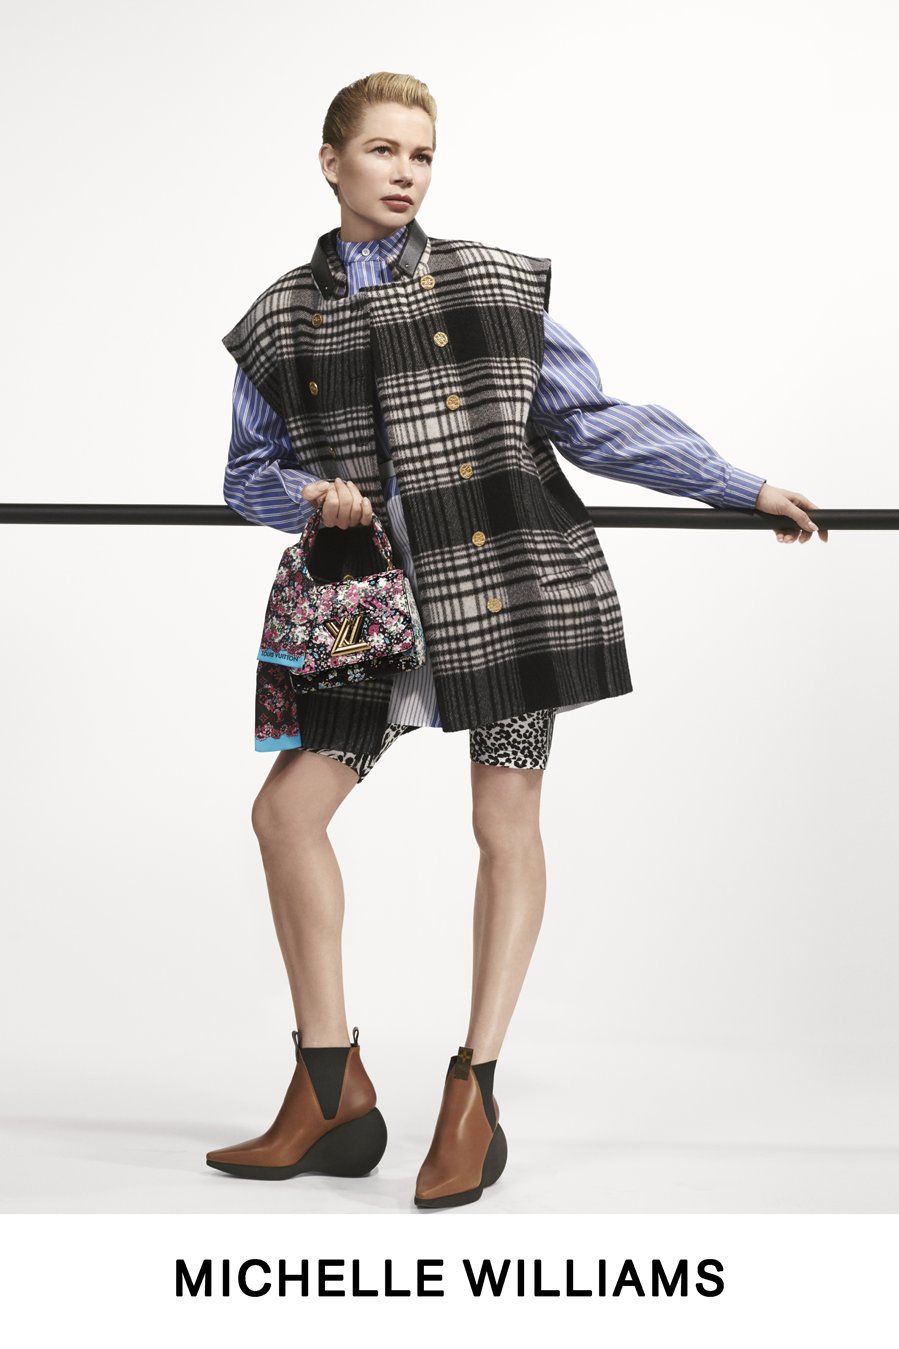 Michelle Williams - Colección Pre-Fall 2019 de Louis Vuitton